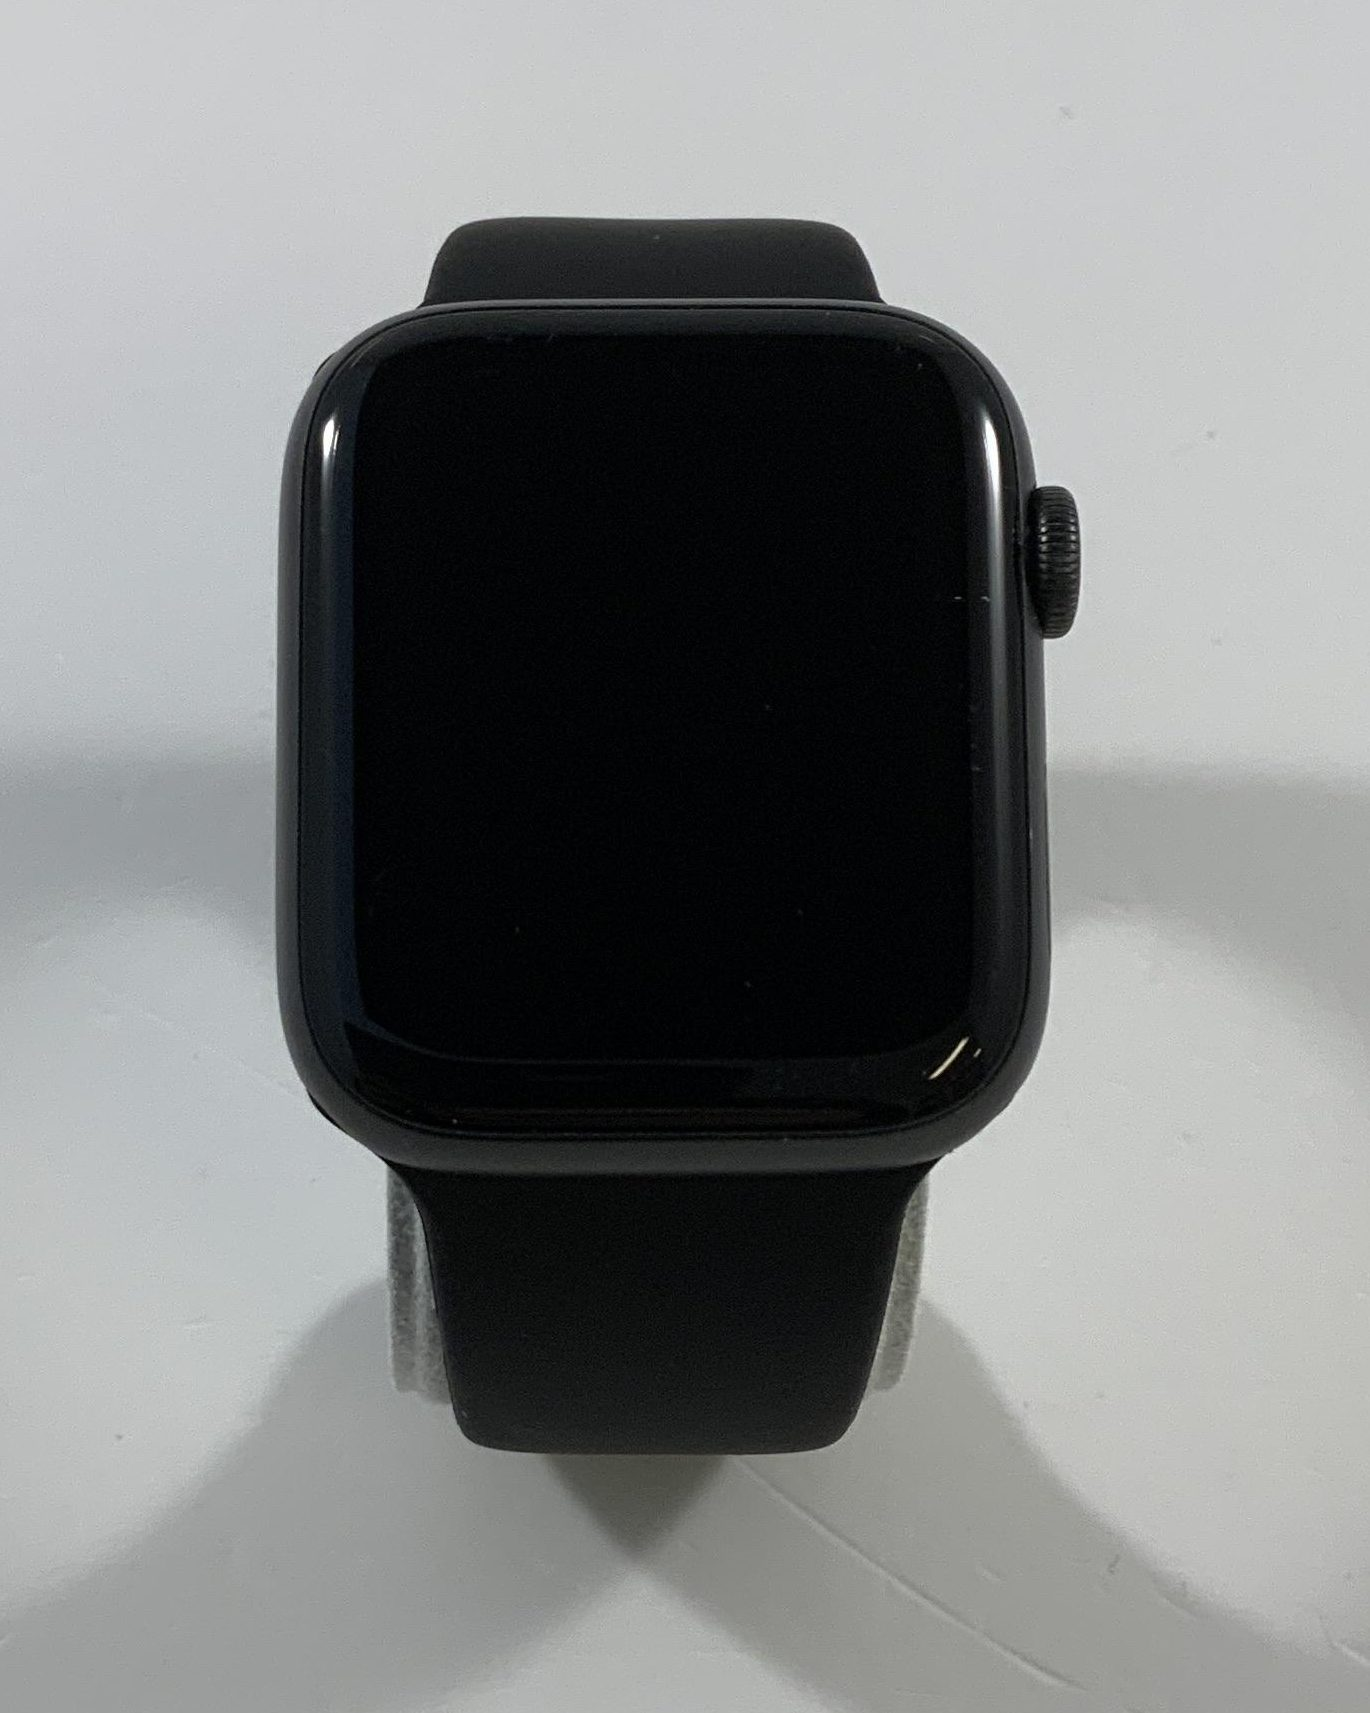 Watch Series 6 Aluminum Cellular (44mm), Space Gray, Afbeelding 1